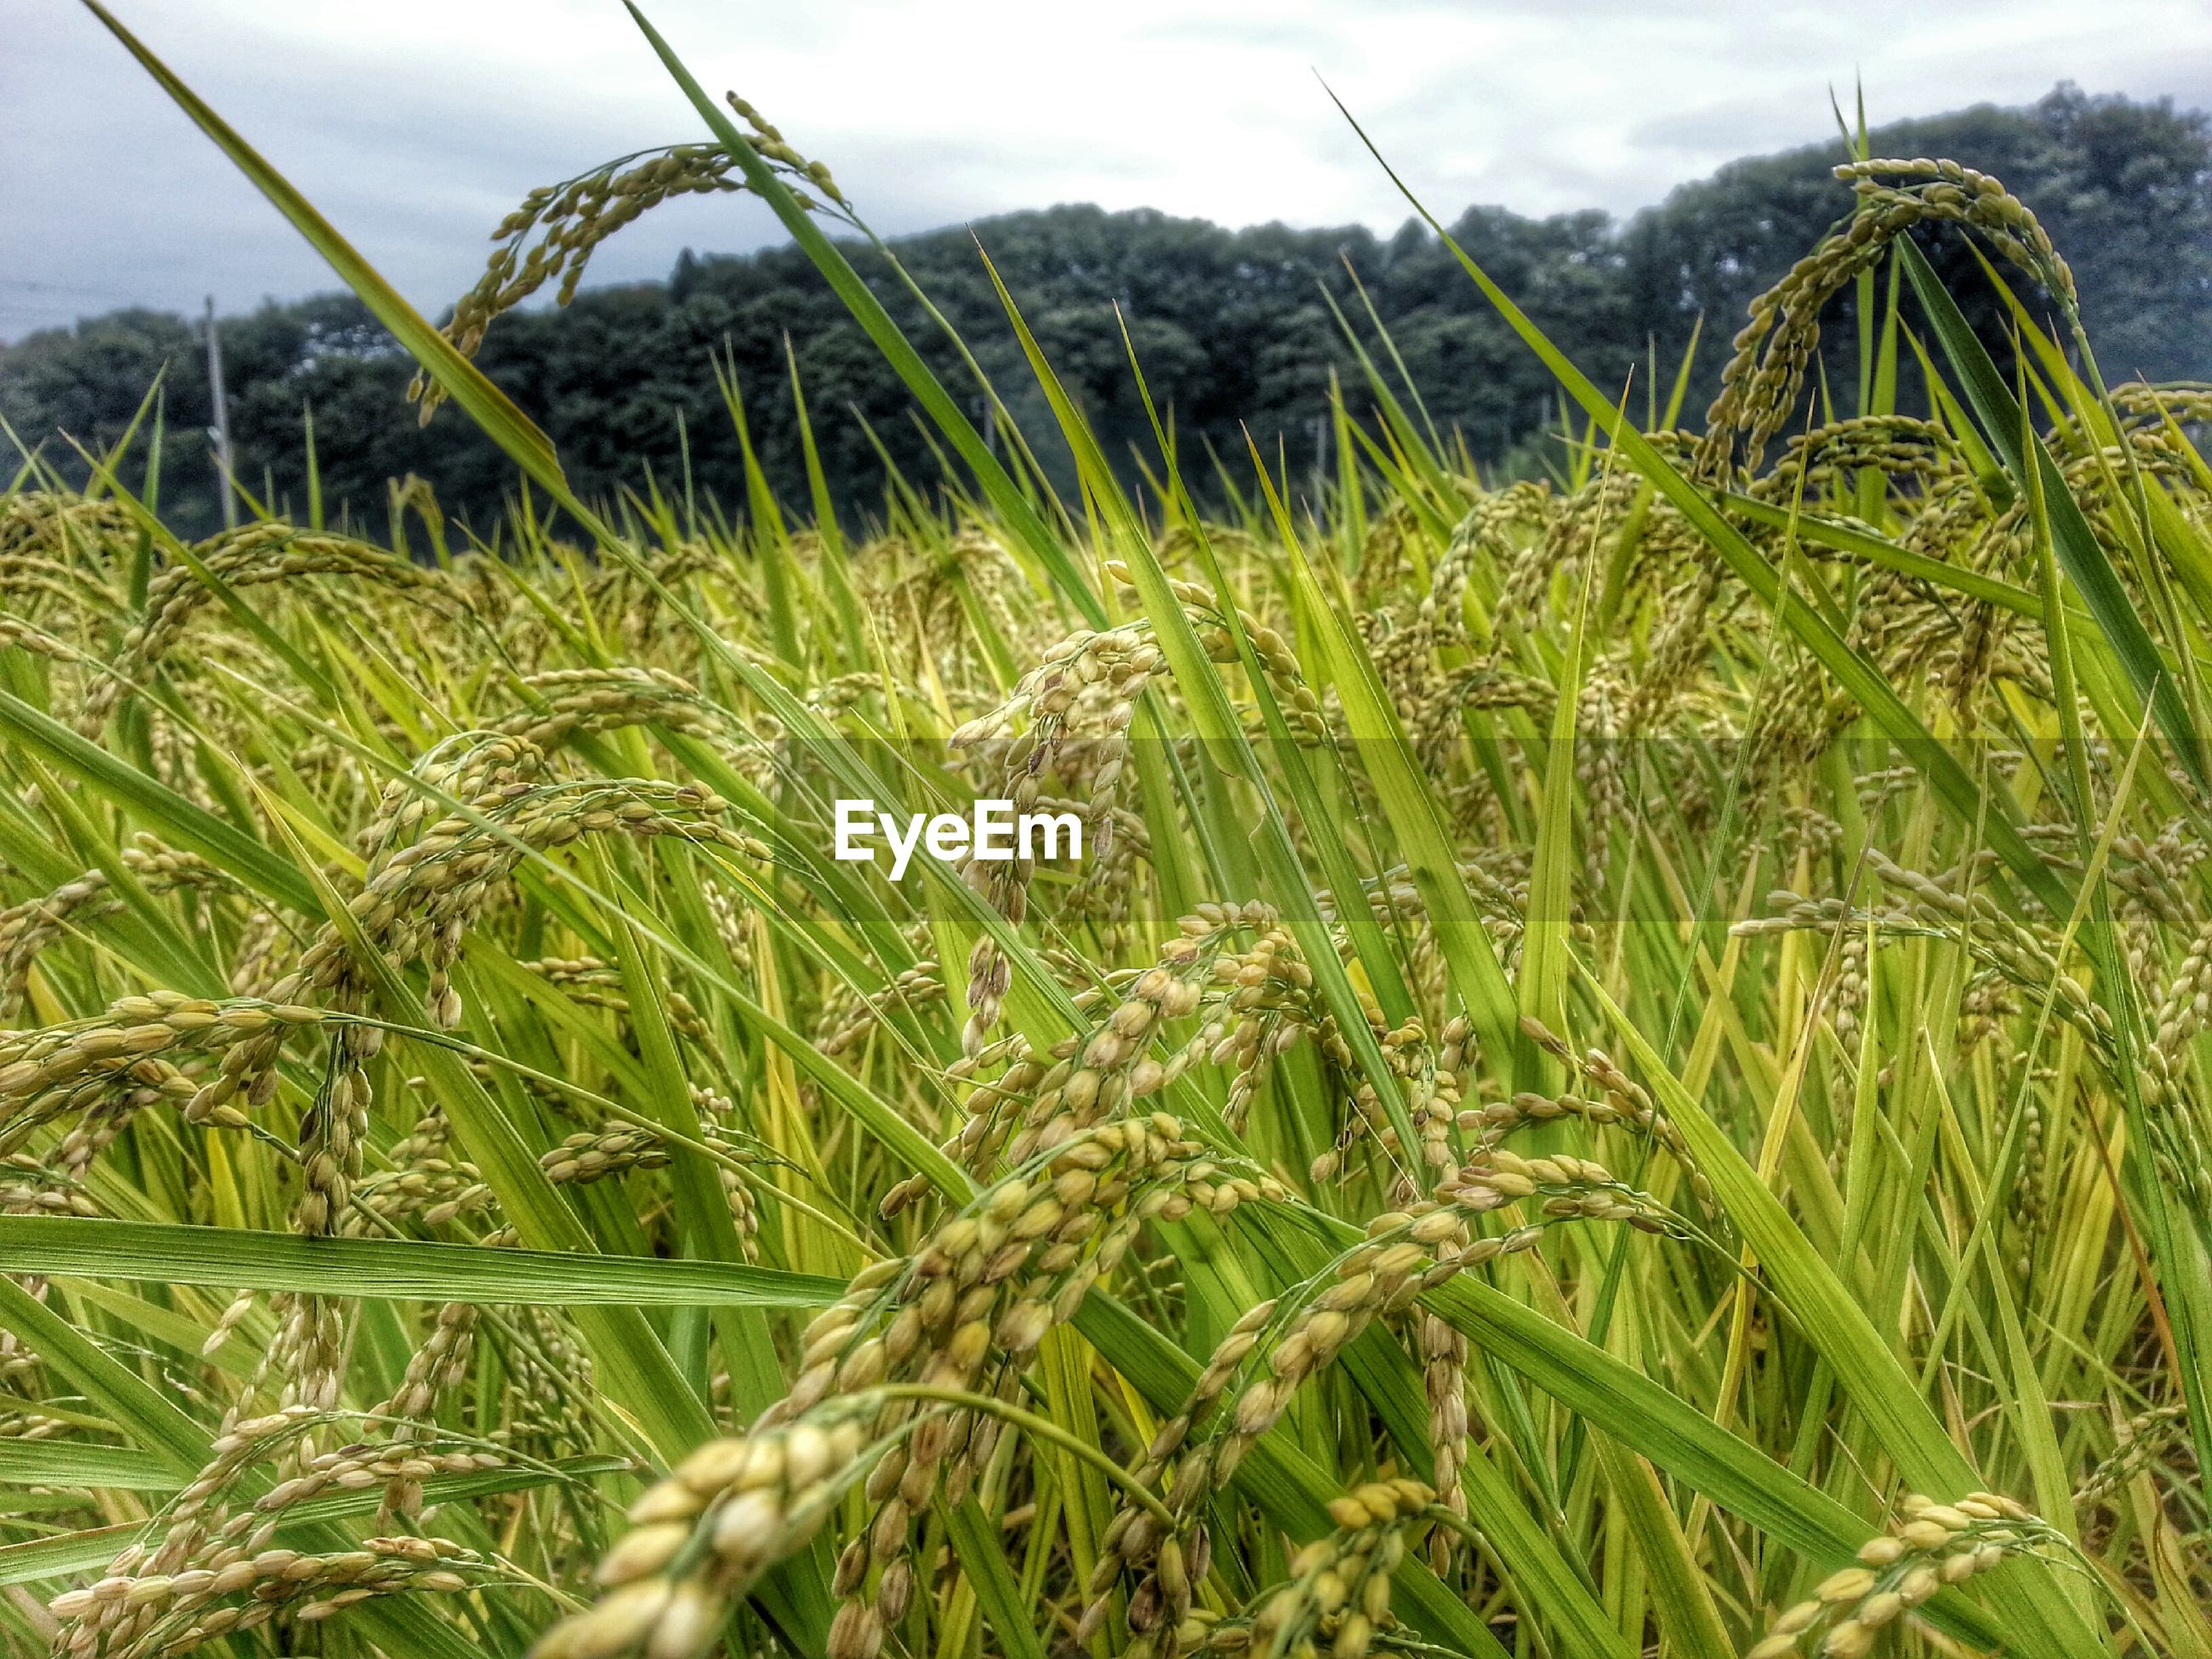 growth, agriculture, field, farm, grass, crop, rural scene, sky, green color, cereal plant, plant, nature, tranquility, landscape, cultivated land, beauty in nature, wheat, tranquil scene, close-up, growing